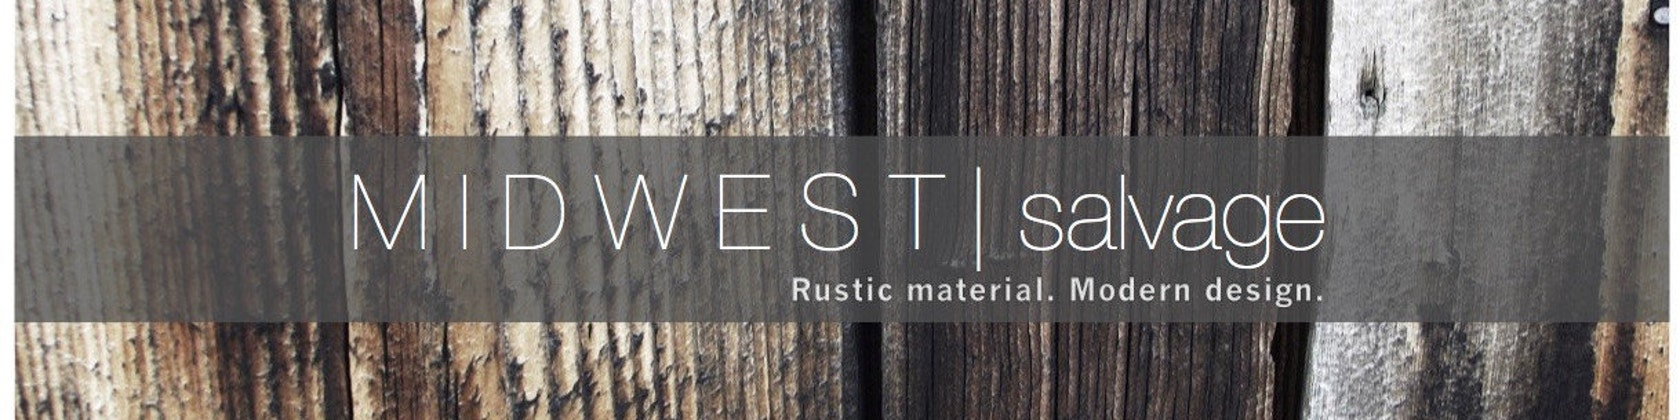 Rustic material. Modern design. by MidwestSalvageStudio on Etsy